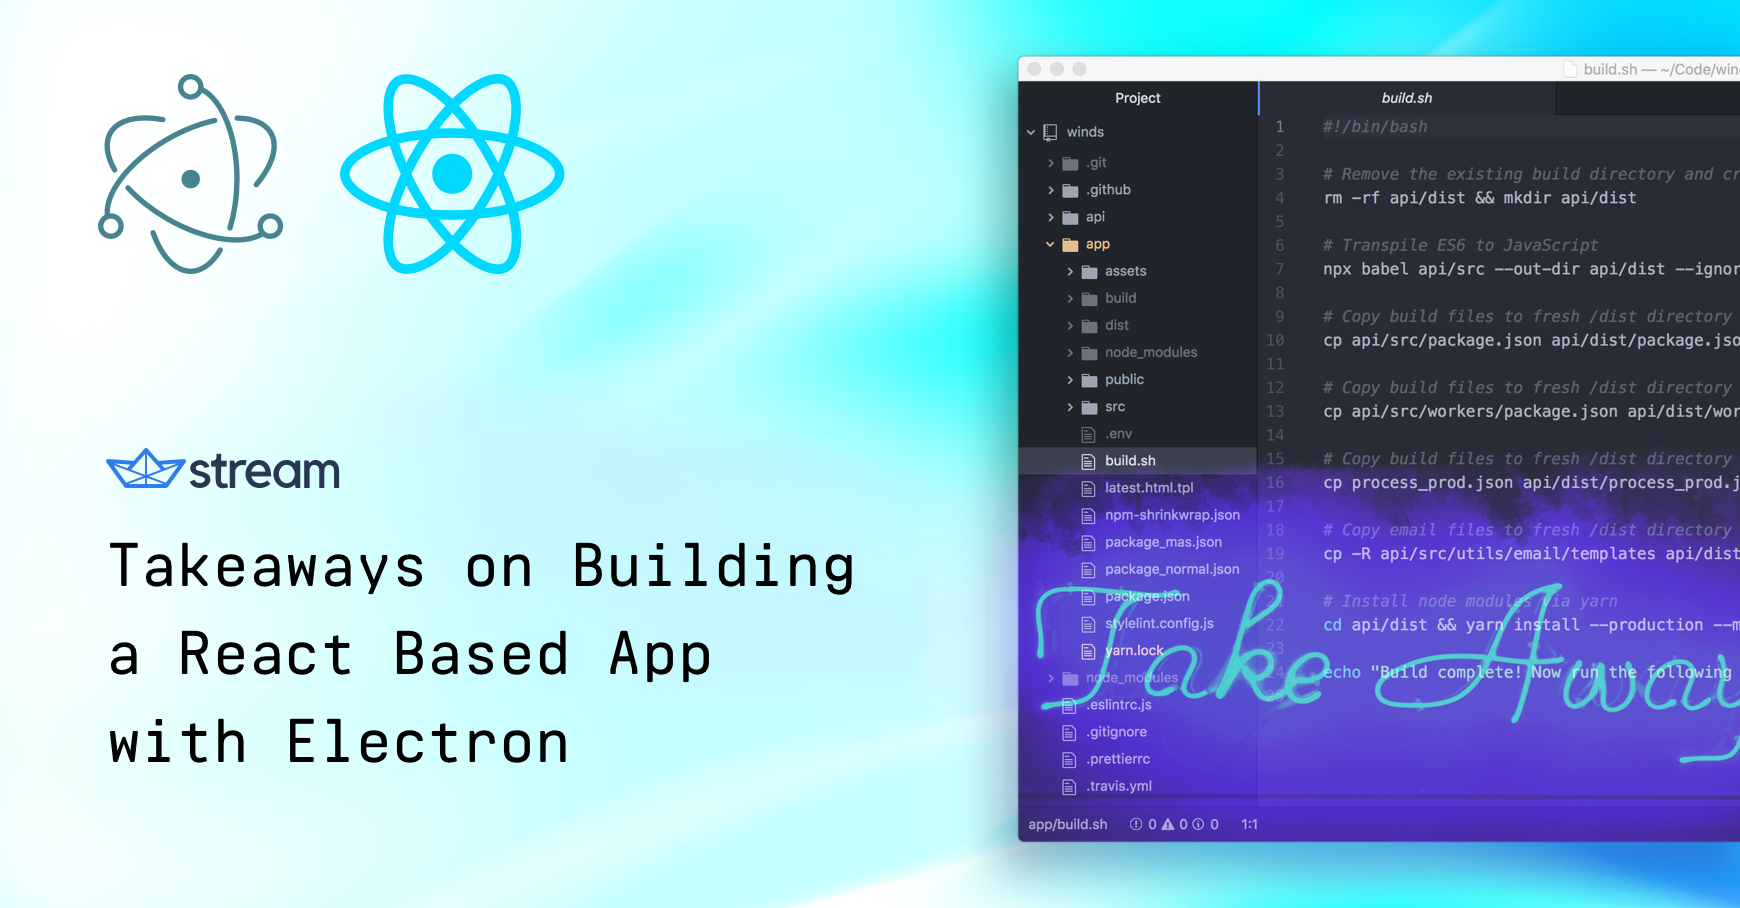 Takeaways on Building a React Based App with Electron - The